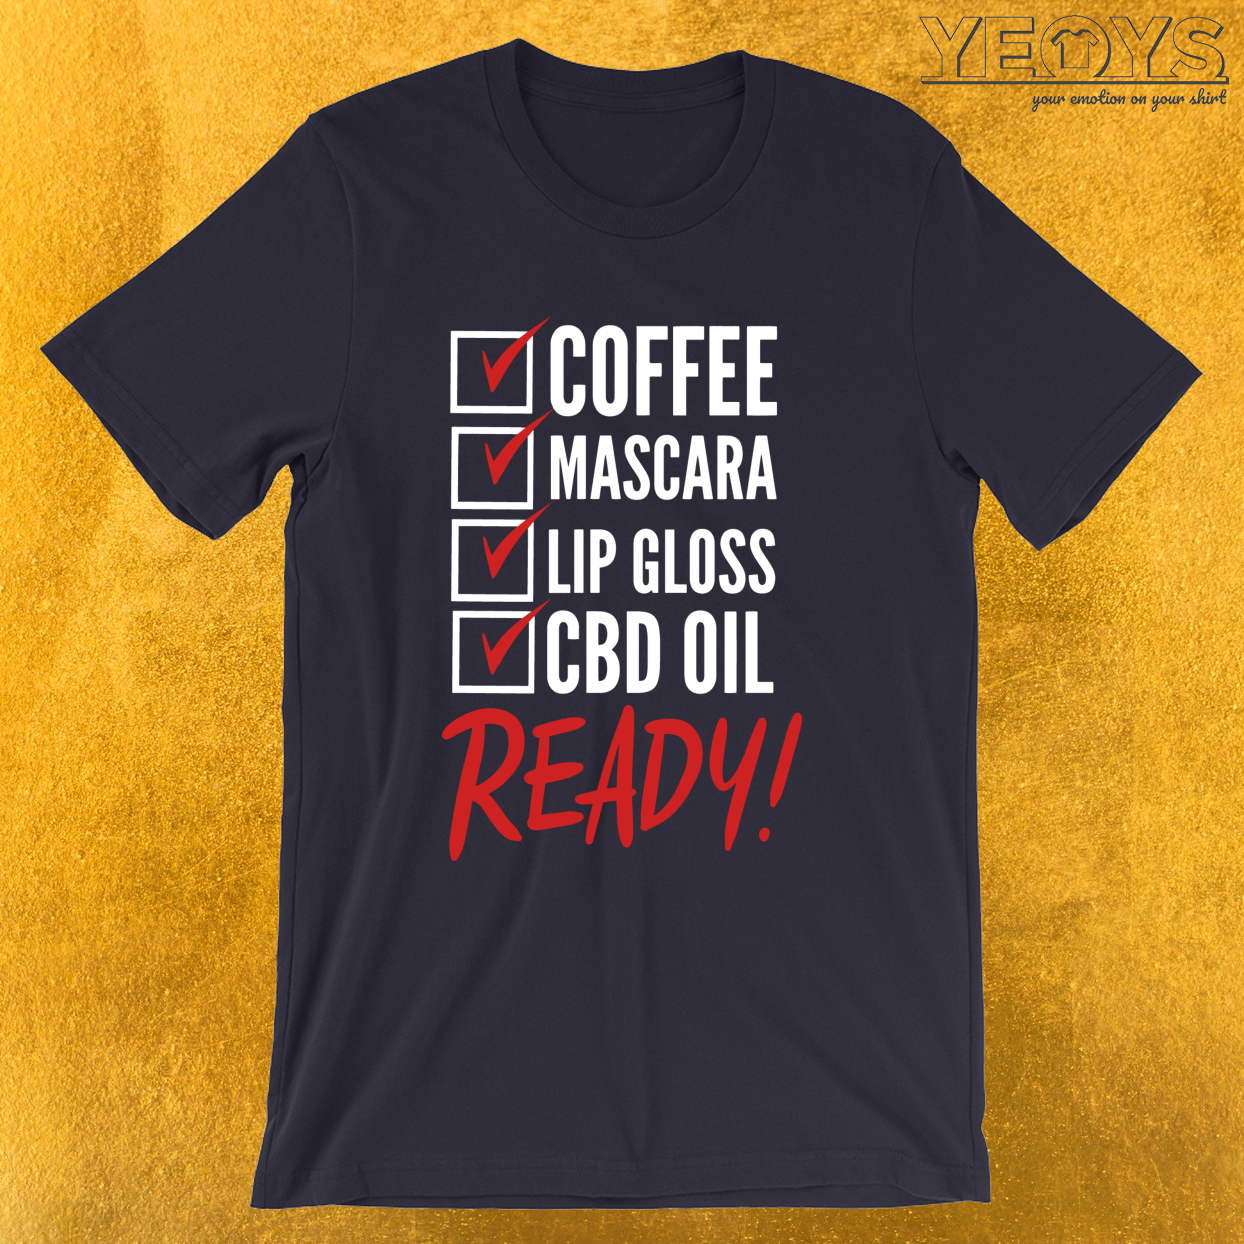 Coffee Mascara Lip Gloss CBD OIL Ready – CBD Oil  Tee